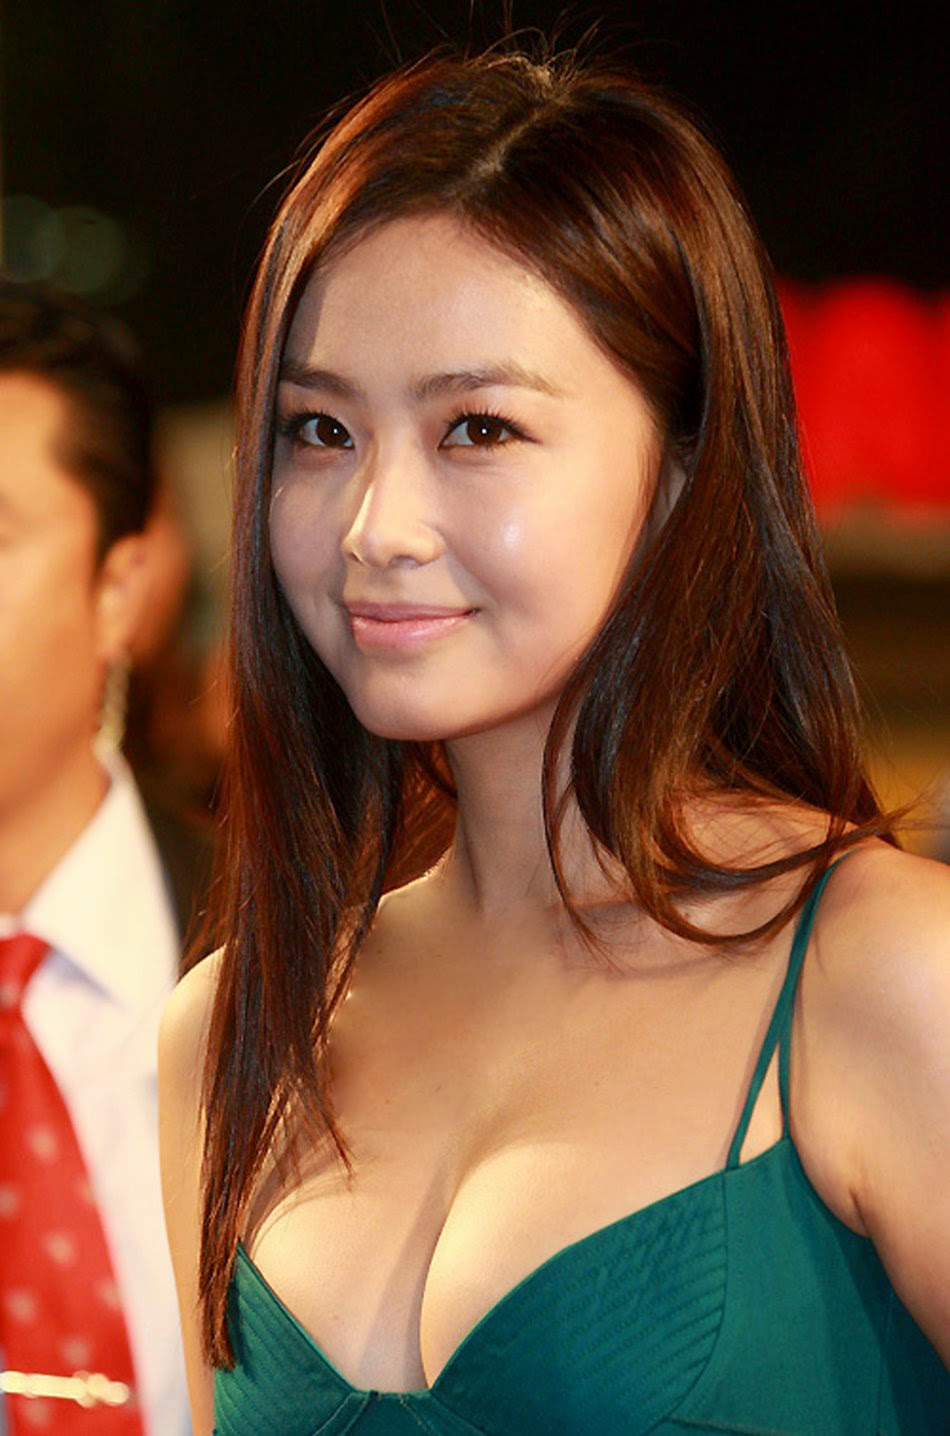 46th Annual Daejong Film Festival Awards - Hong Su Hyeon (홍수현)